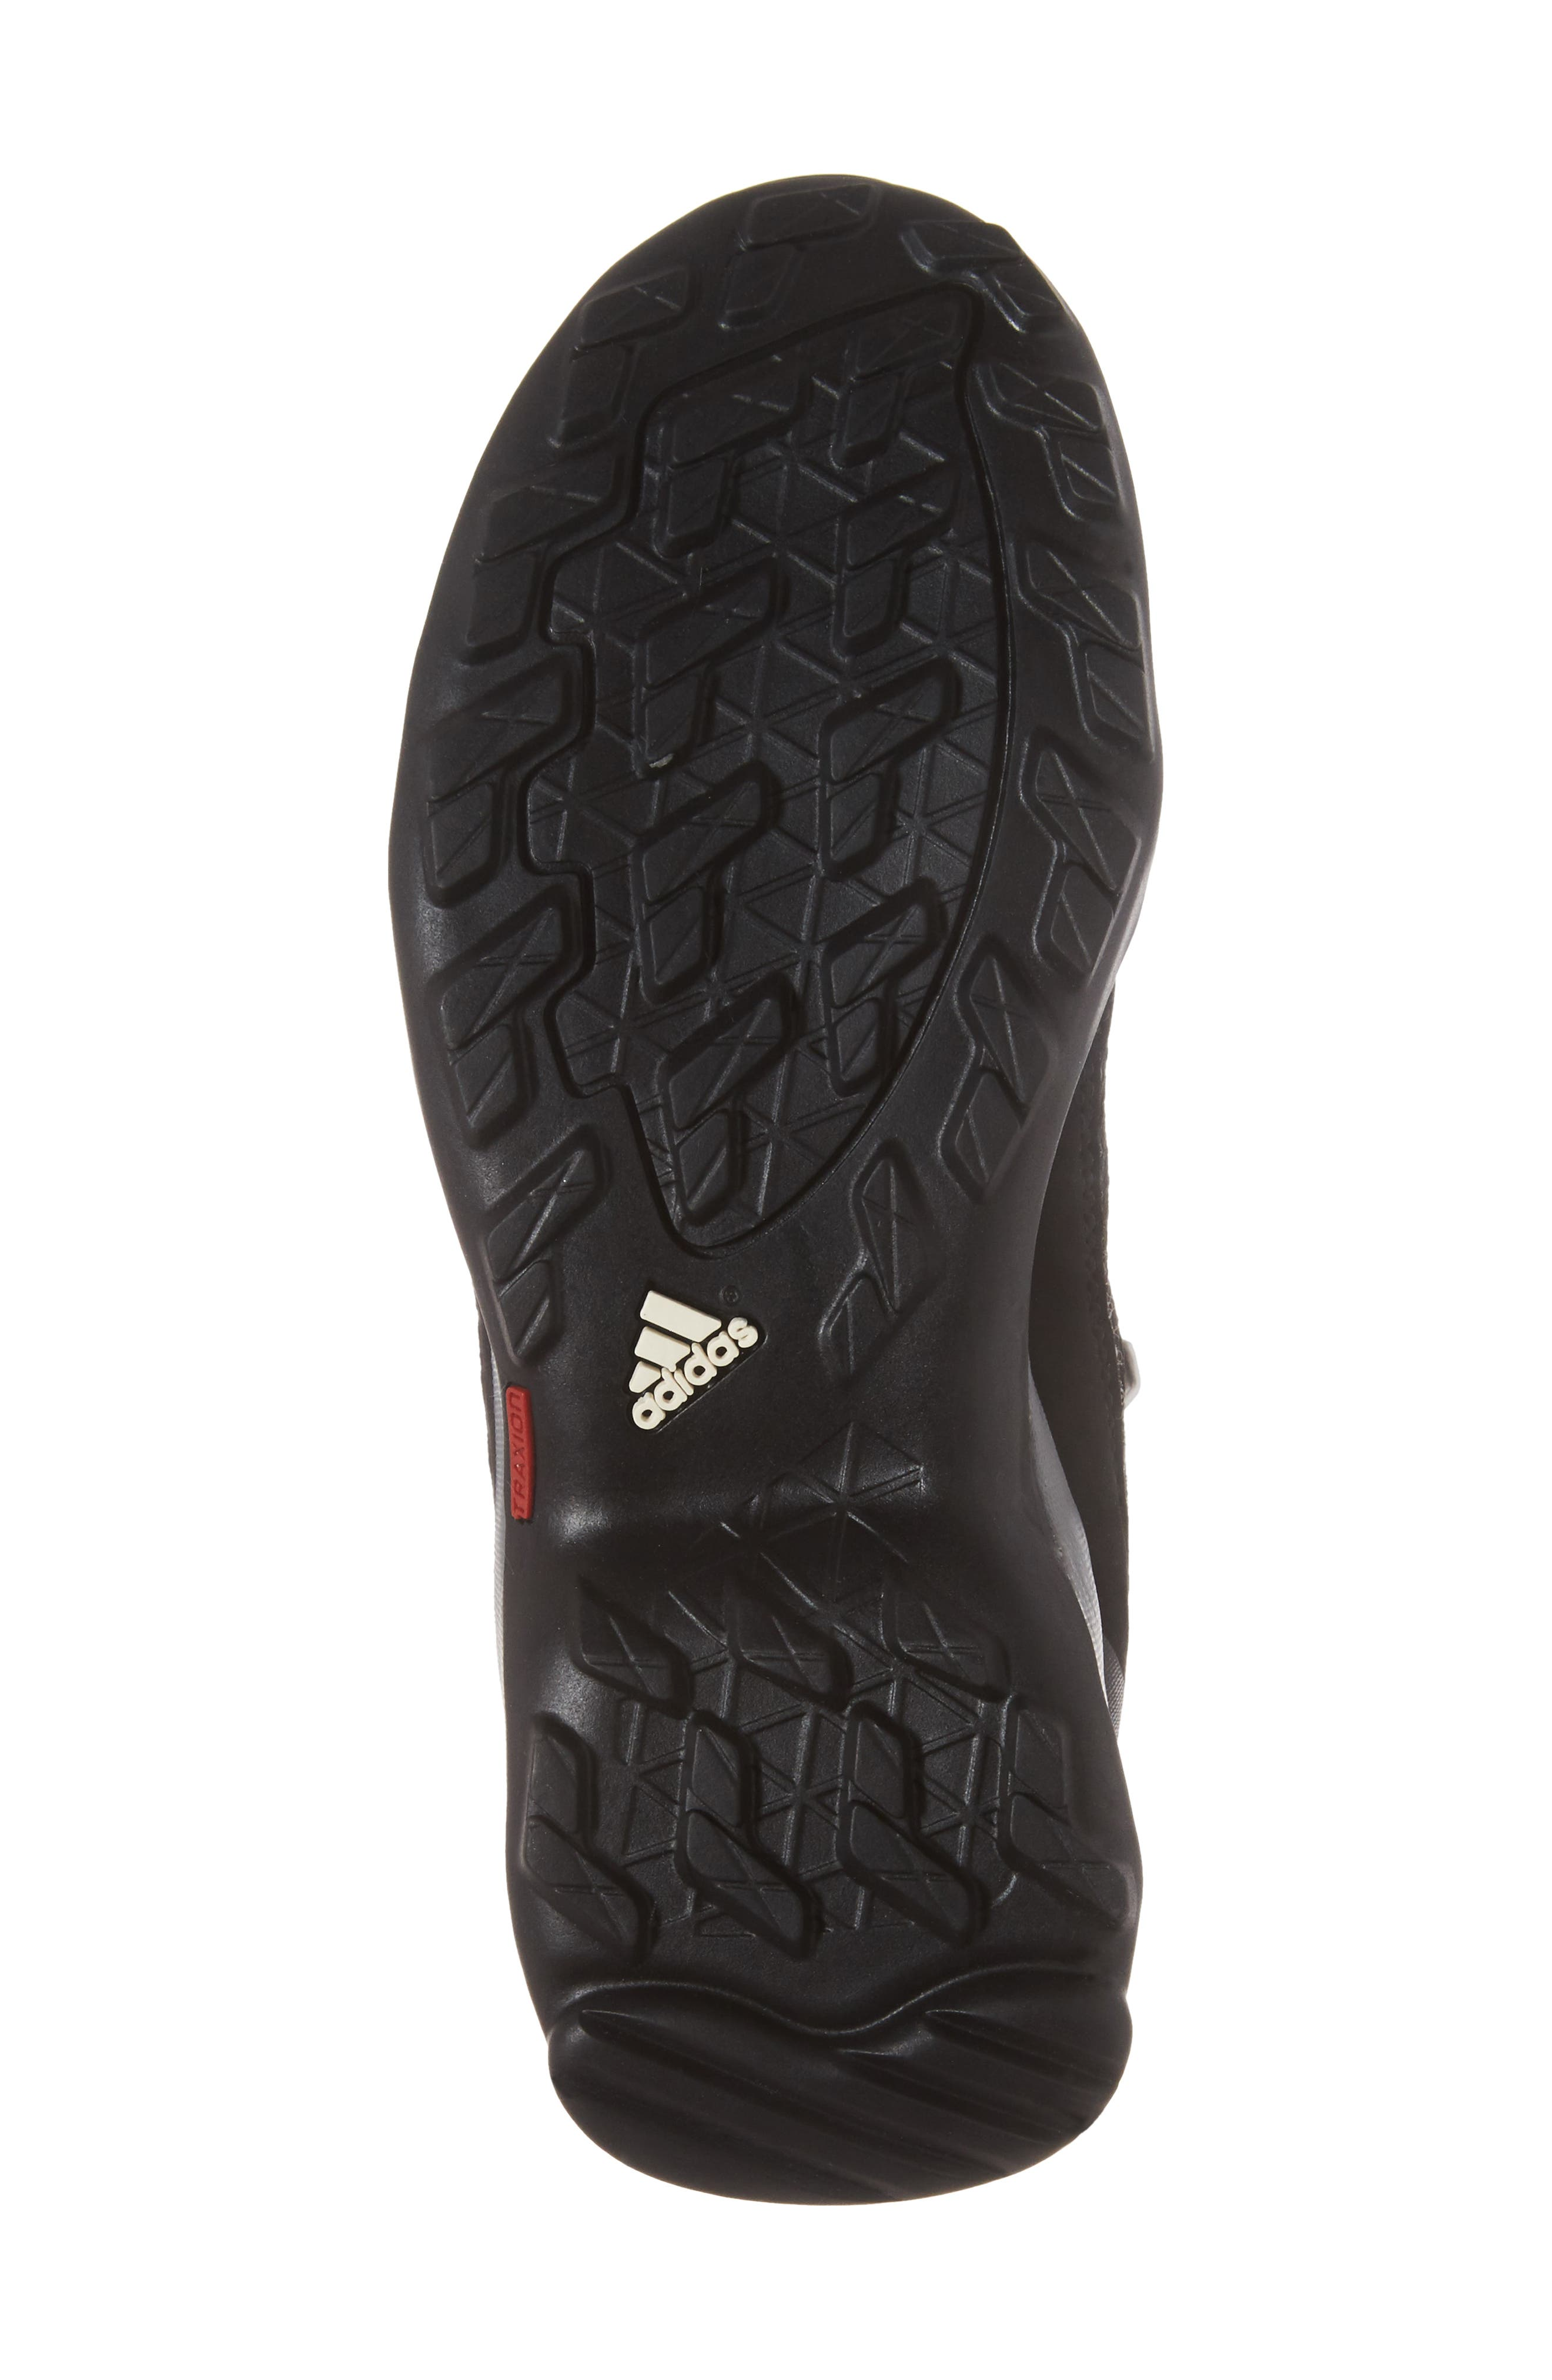 Terrex Mid Gore-Tex<sup>®</sup> Insulated Waterproof Sneaker Boot,                             Alternate thumbnail 6, color,                             001